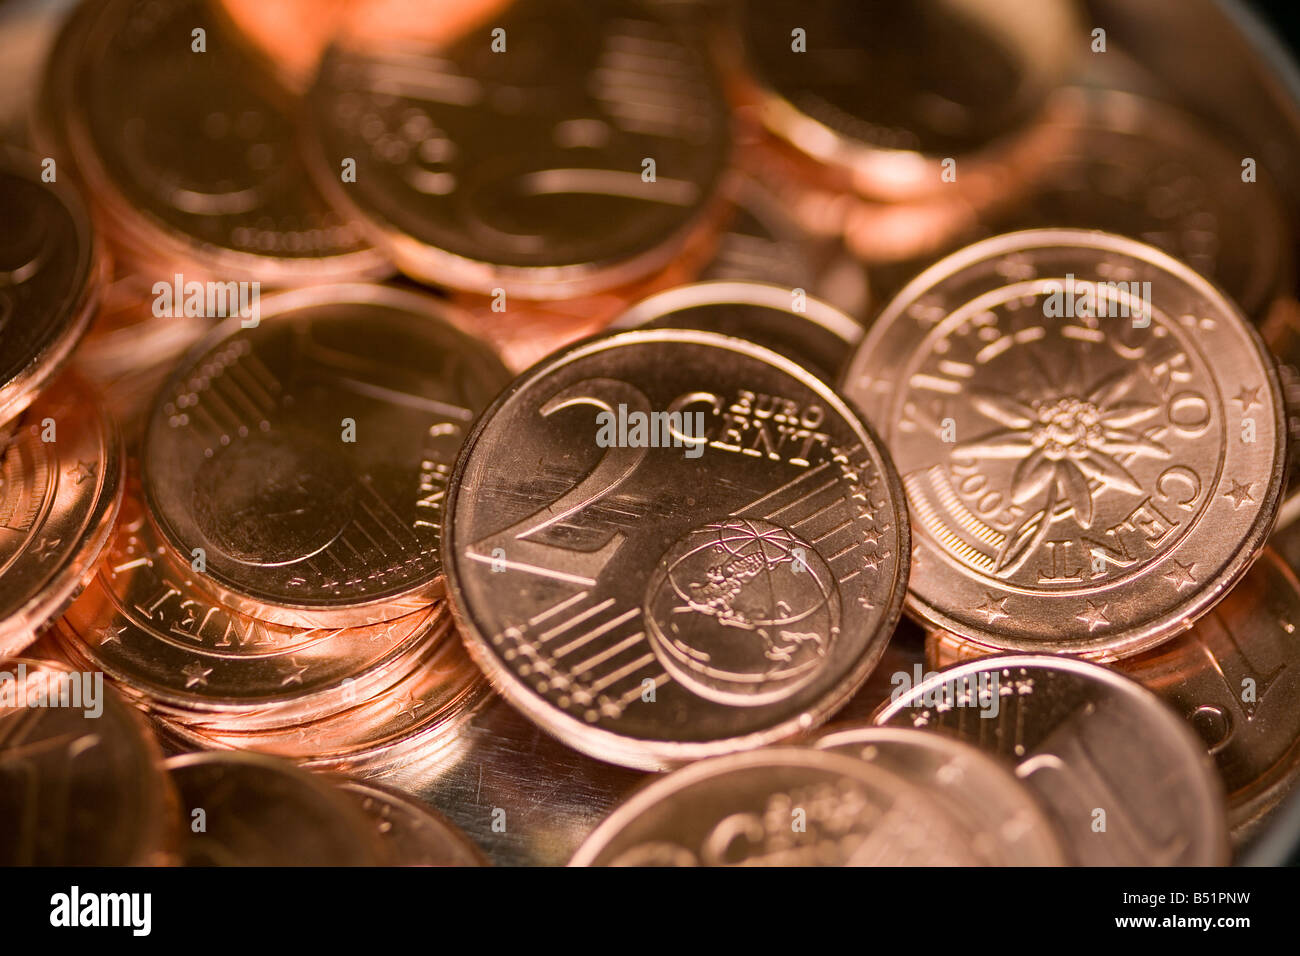 pile of 2 cent coins - Stock Image